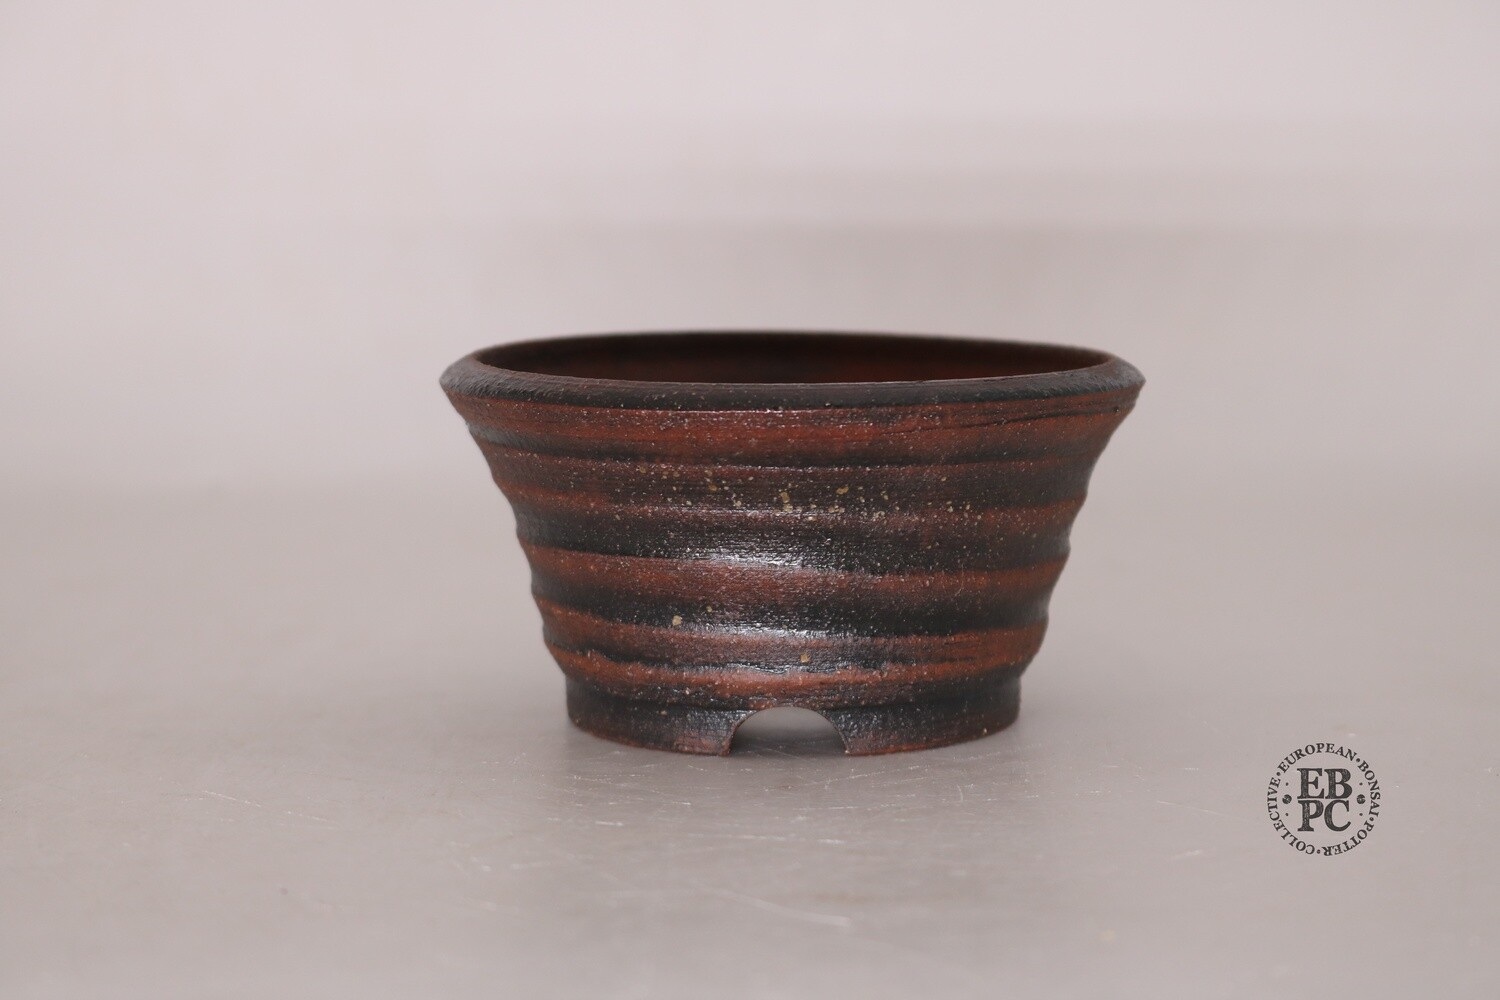 Gramming Pots - 11cm; Unglazed; Dual-Tone Design; Red and Brown Finish; Carved Feet; EBPC Stamped; Tomas Gramming